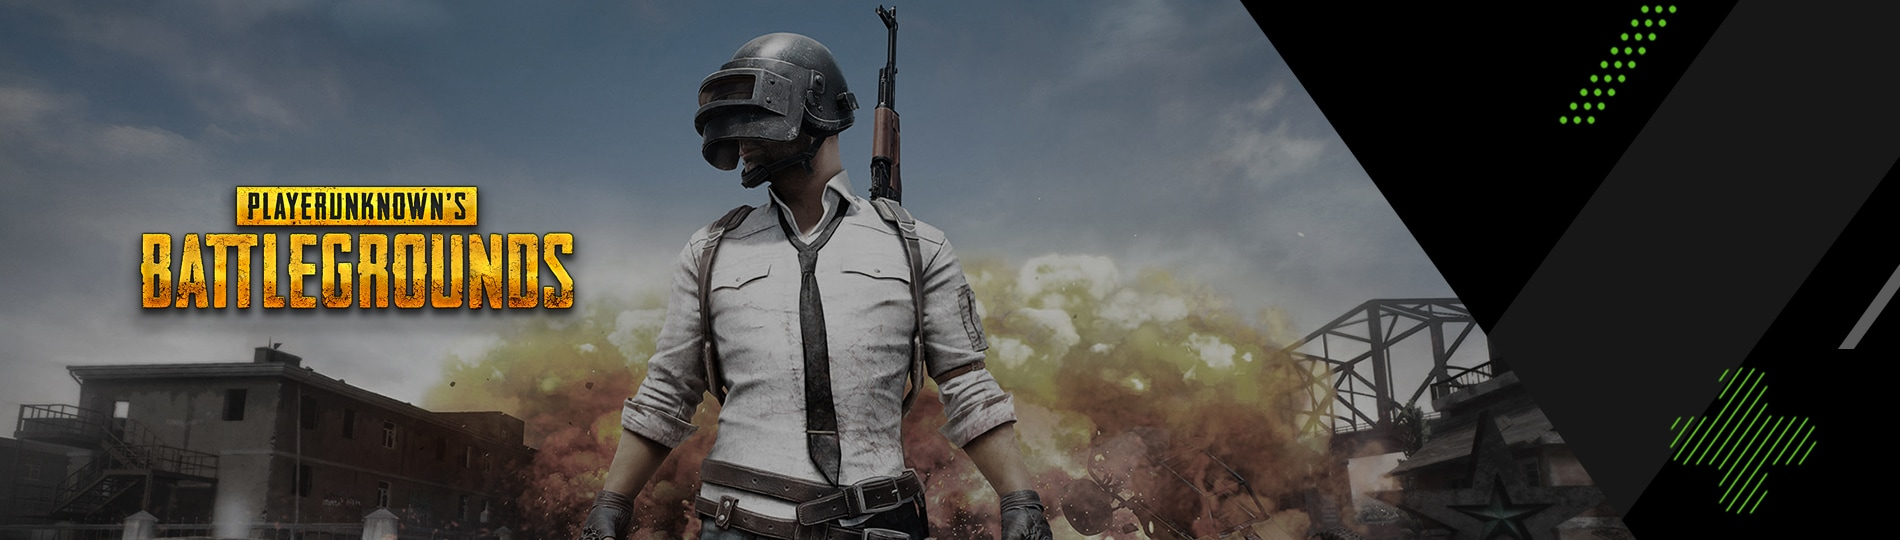 Buy PUBG Merchandise - Xbox Official Gear - Microsoft